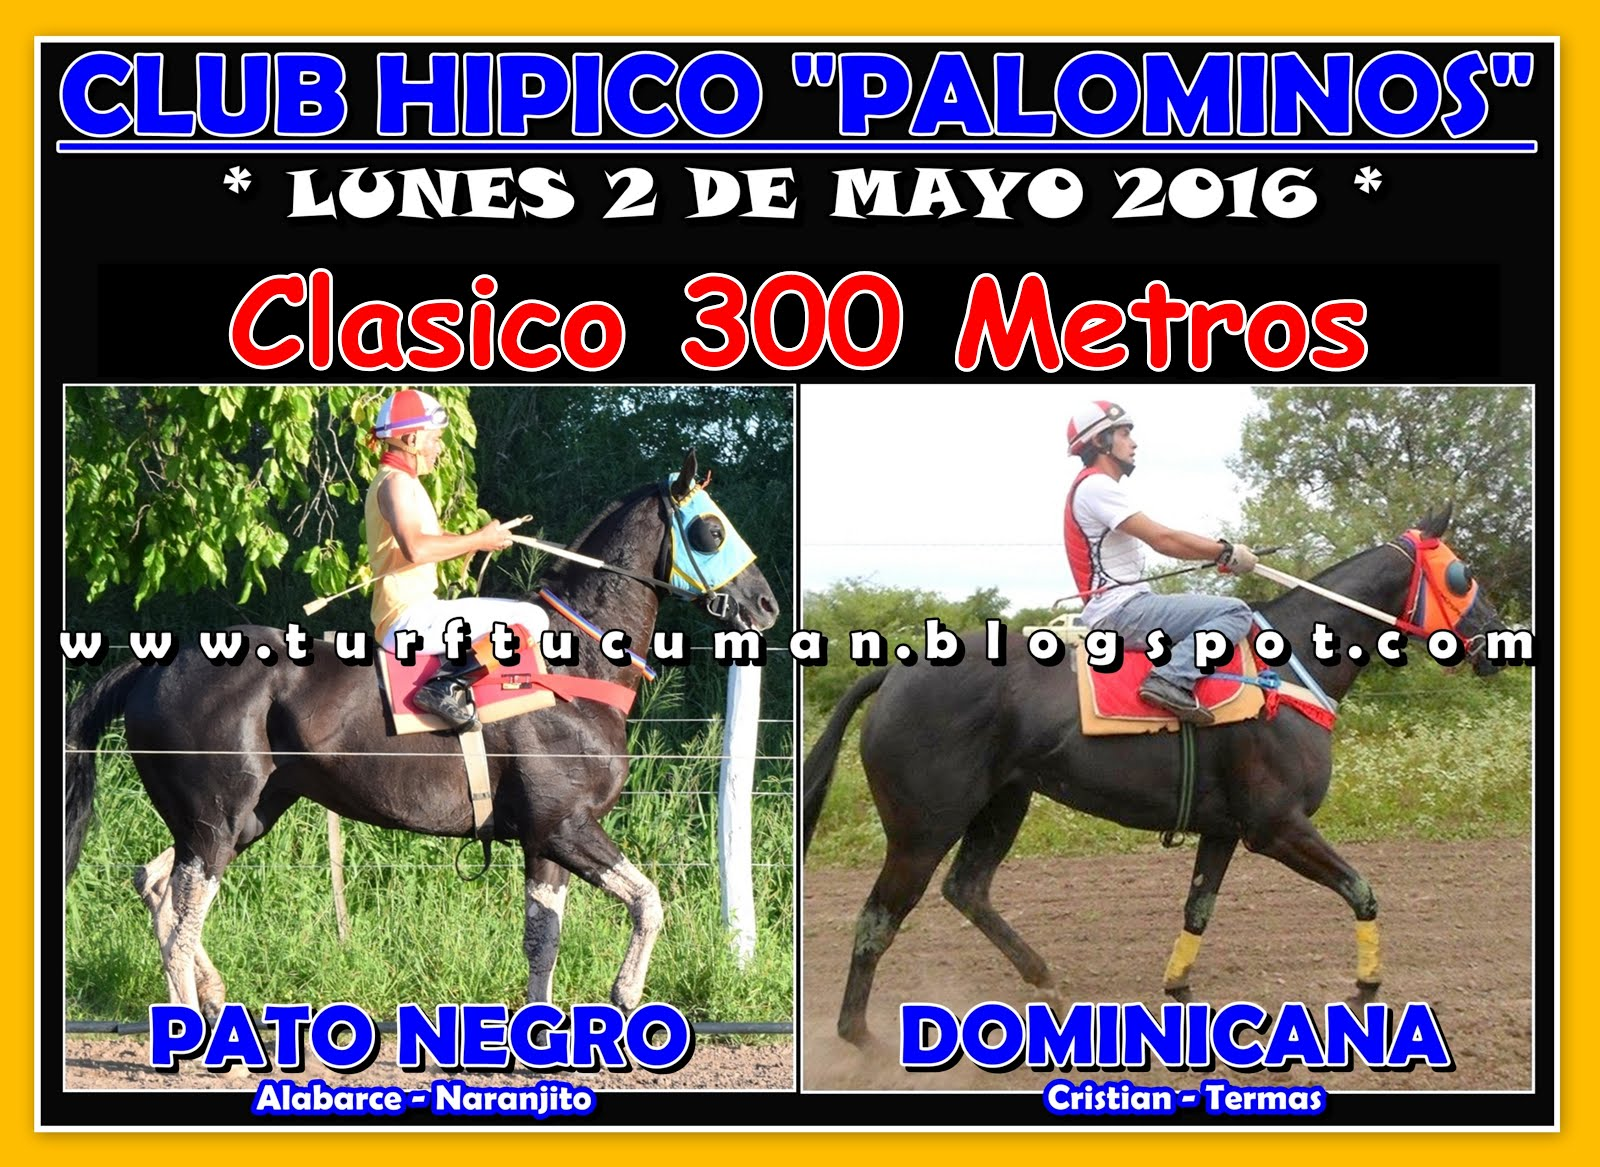 PATO NEGRO VS DOMINICANA